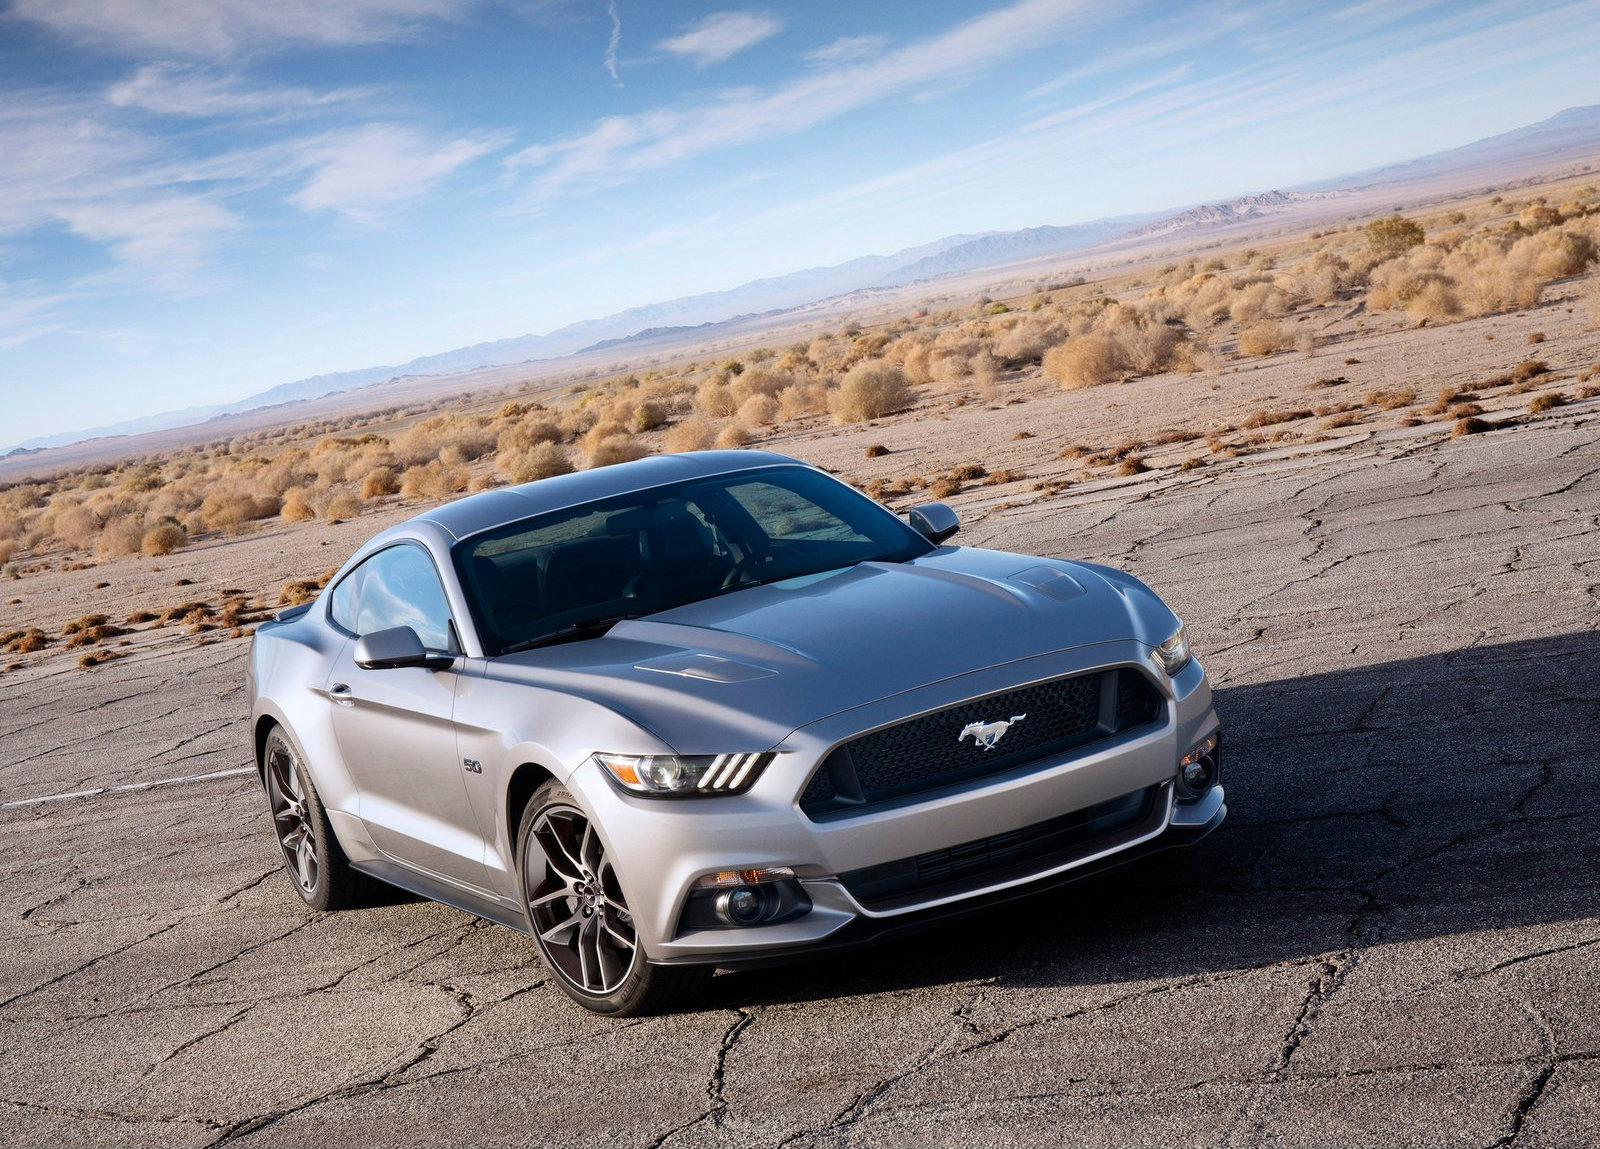 just - The All New Ford Mustang Gt